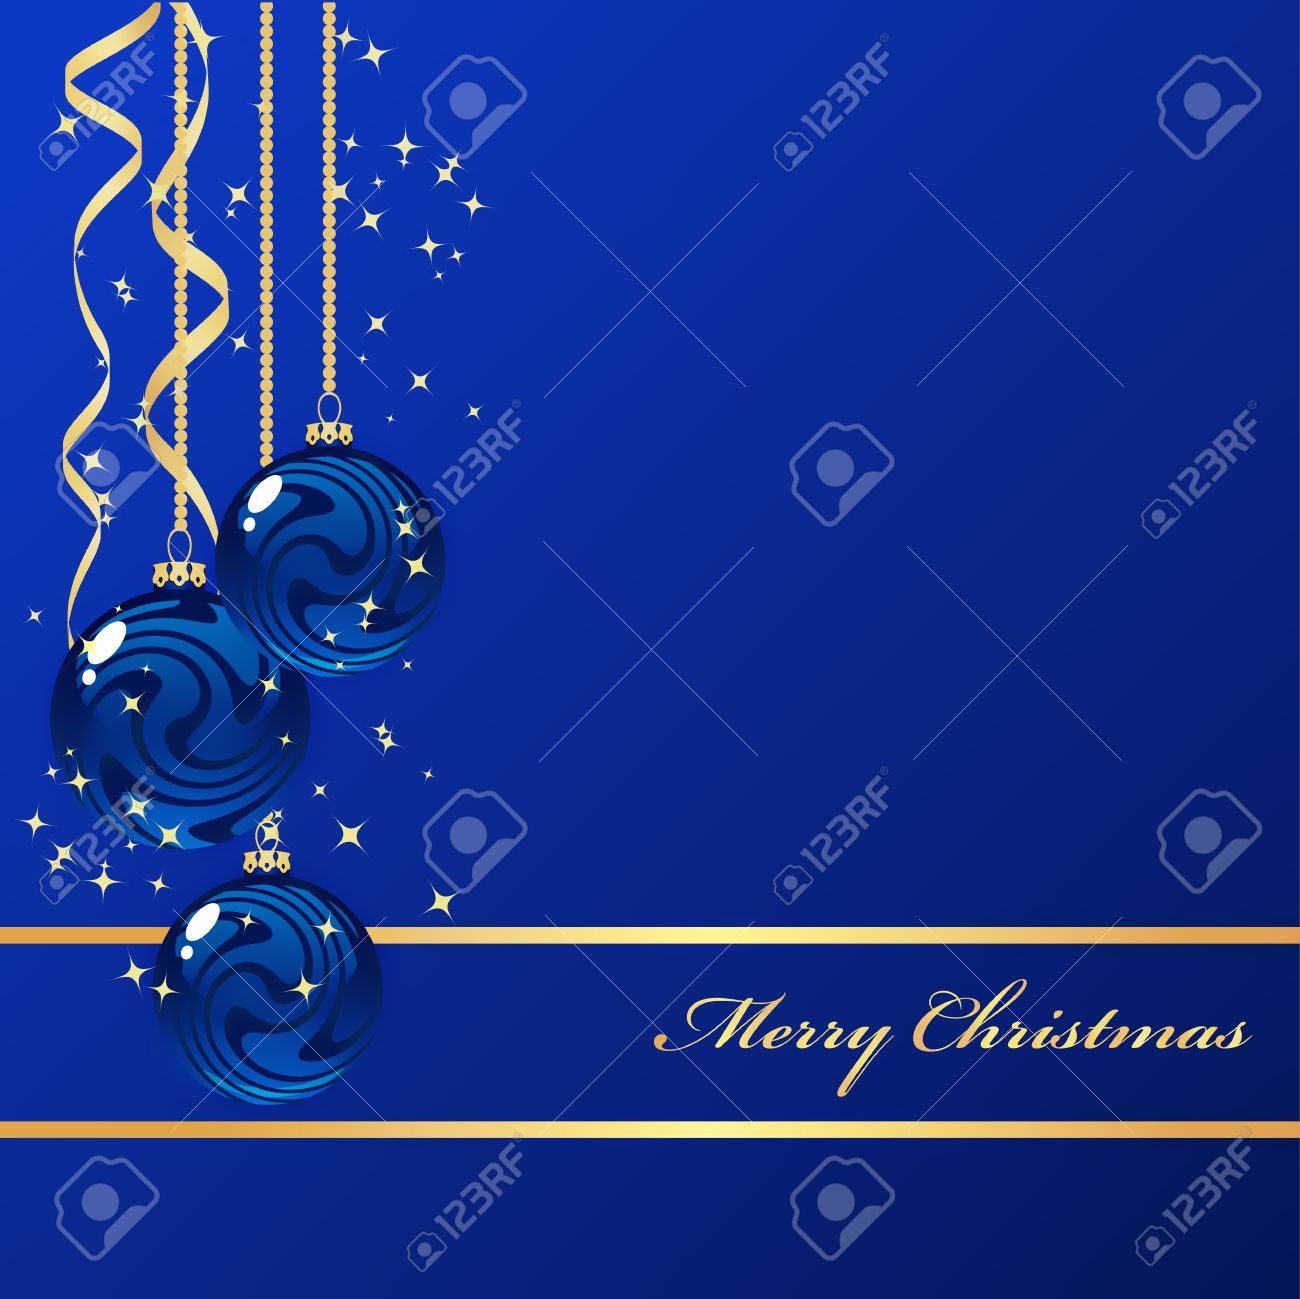 Blue and gold christmas decorations - Blue Background With Christmas Decorations Stock Vector 8346175